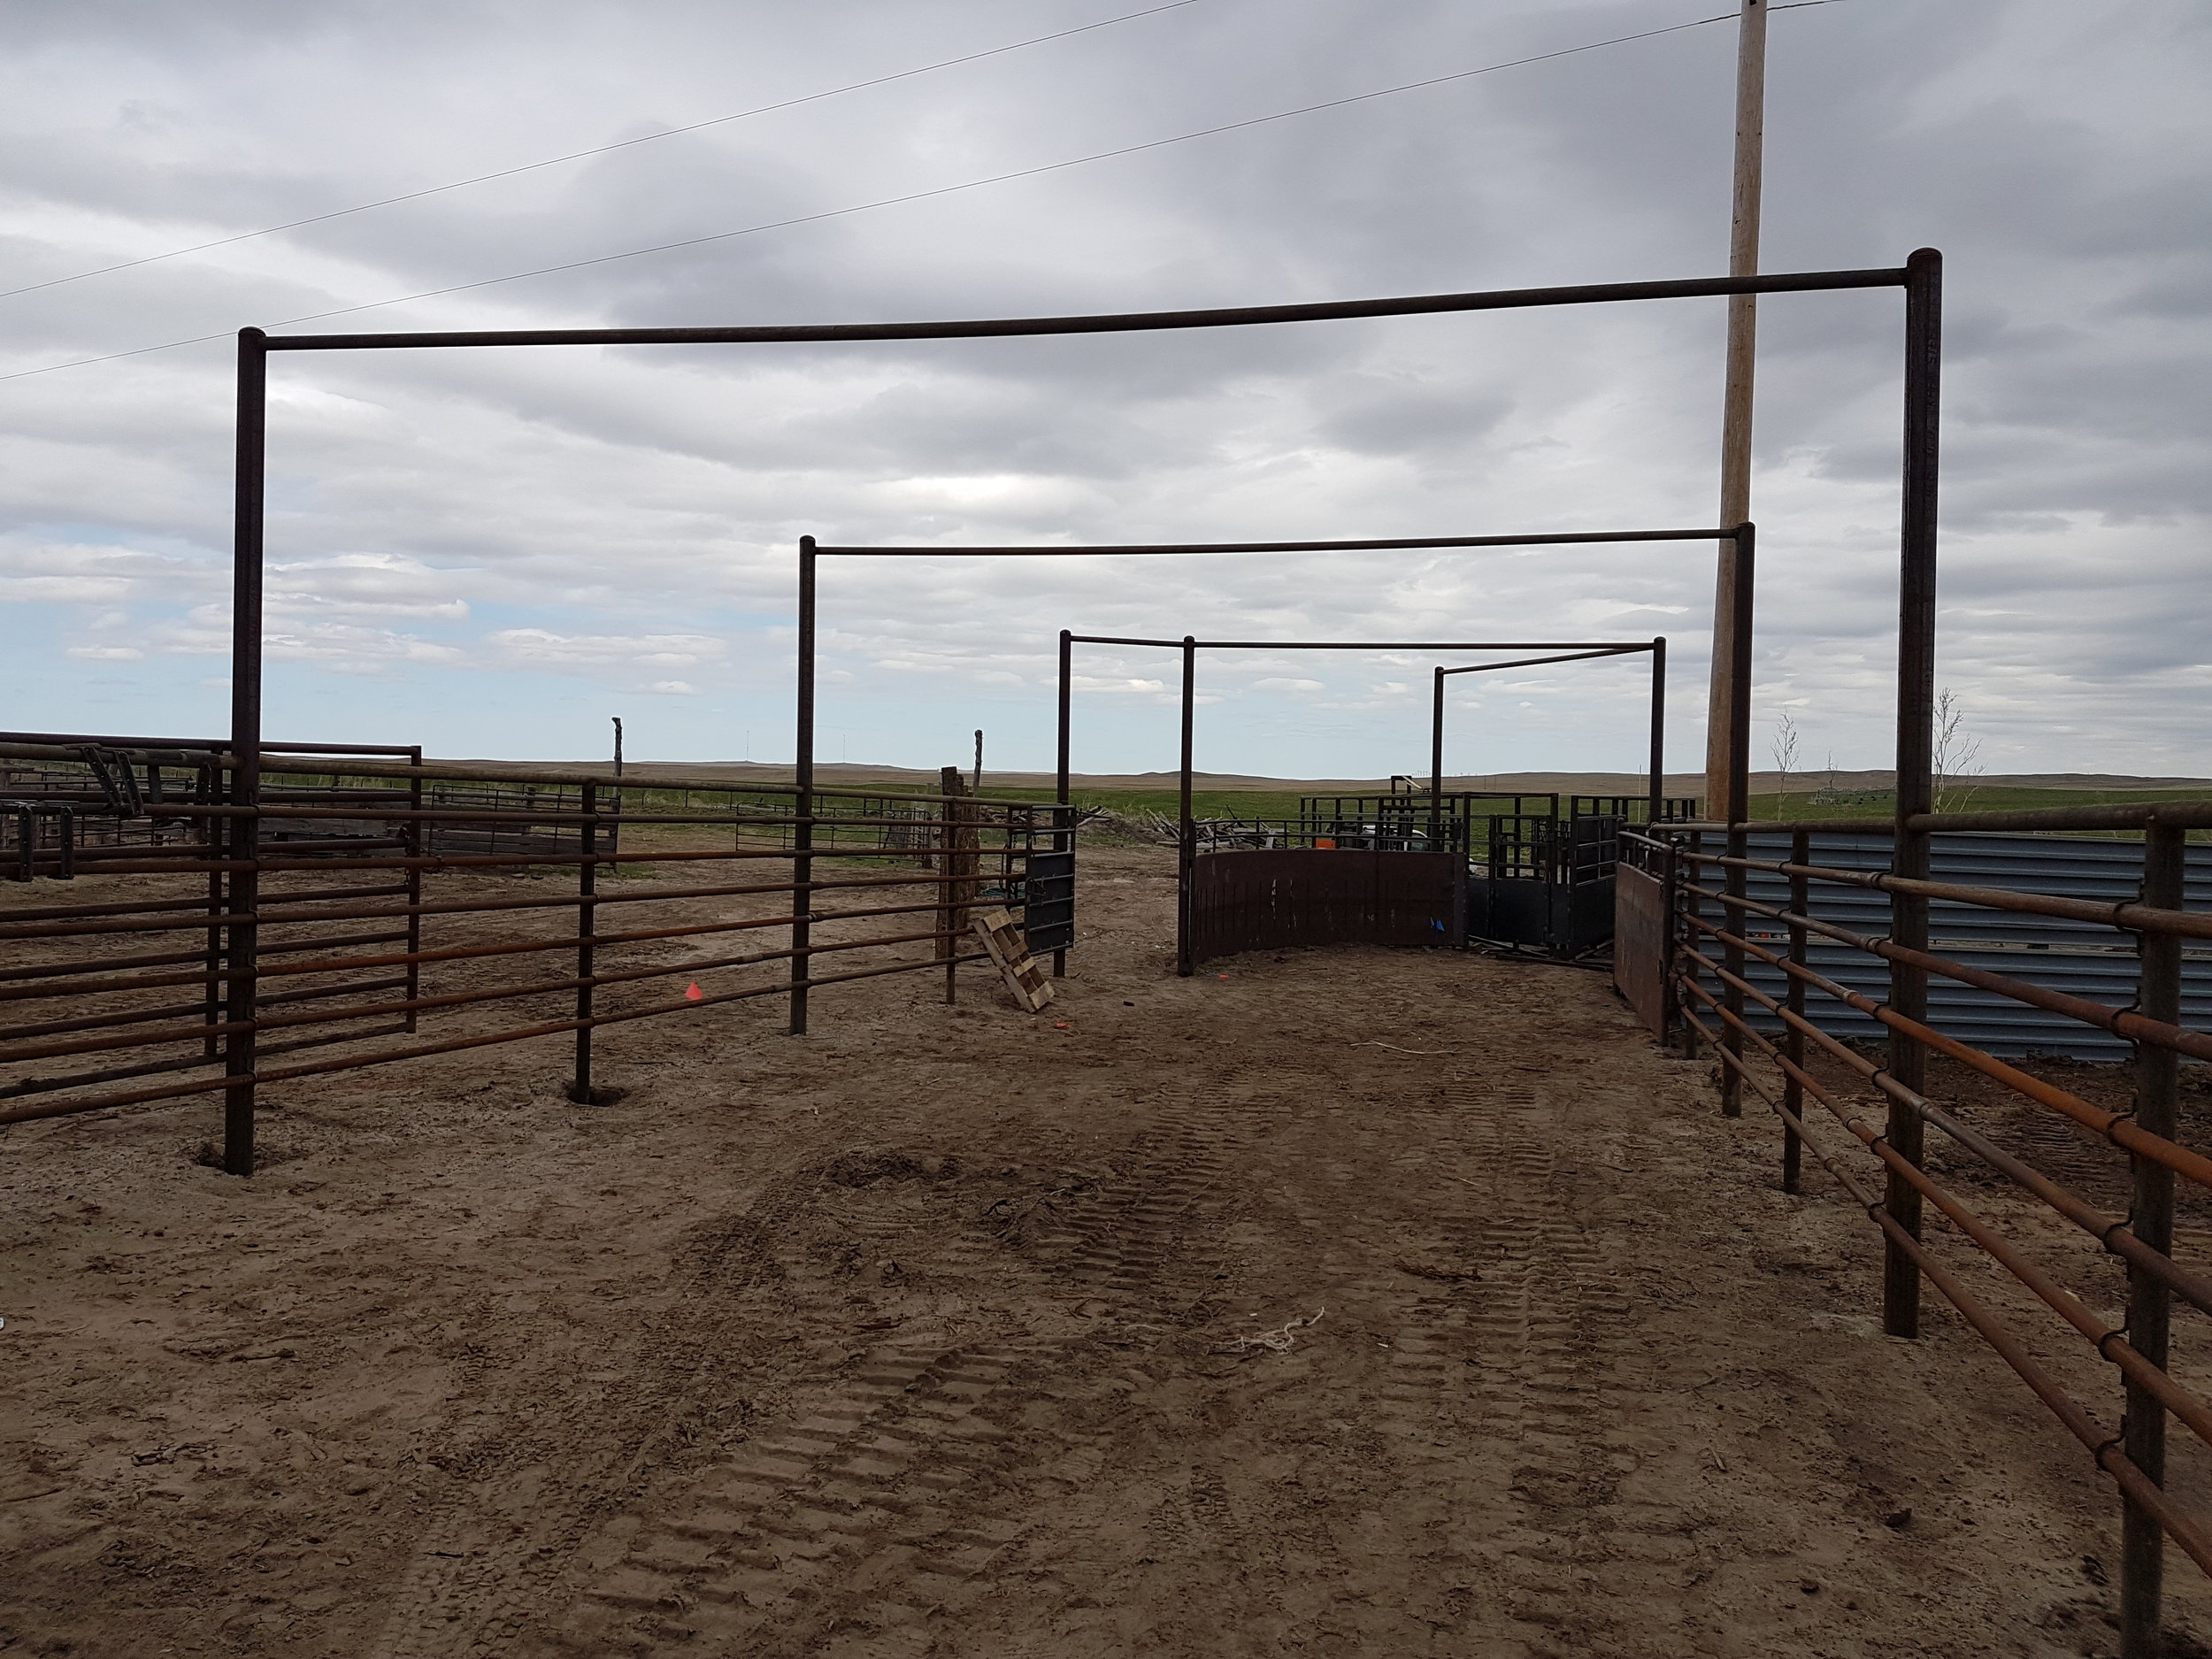 Ranch corrals